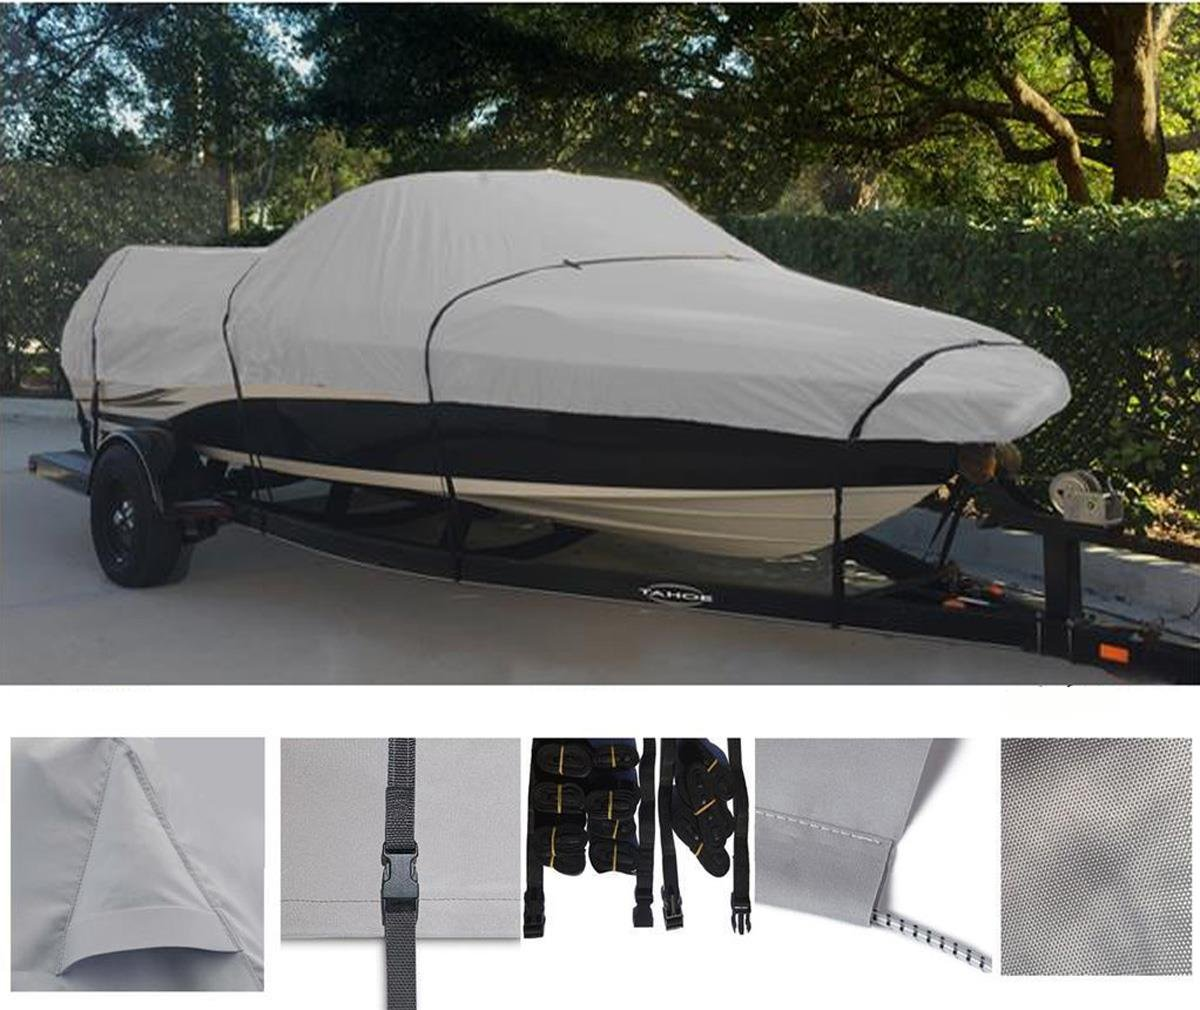 GREY, STORAGE, TRAVEL, MOORING BOAT COVER FOR SEA RAY 210 BOW RIDER 1999-2001 by SBU